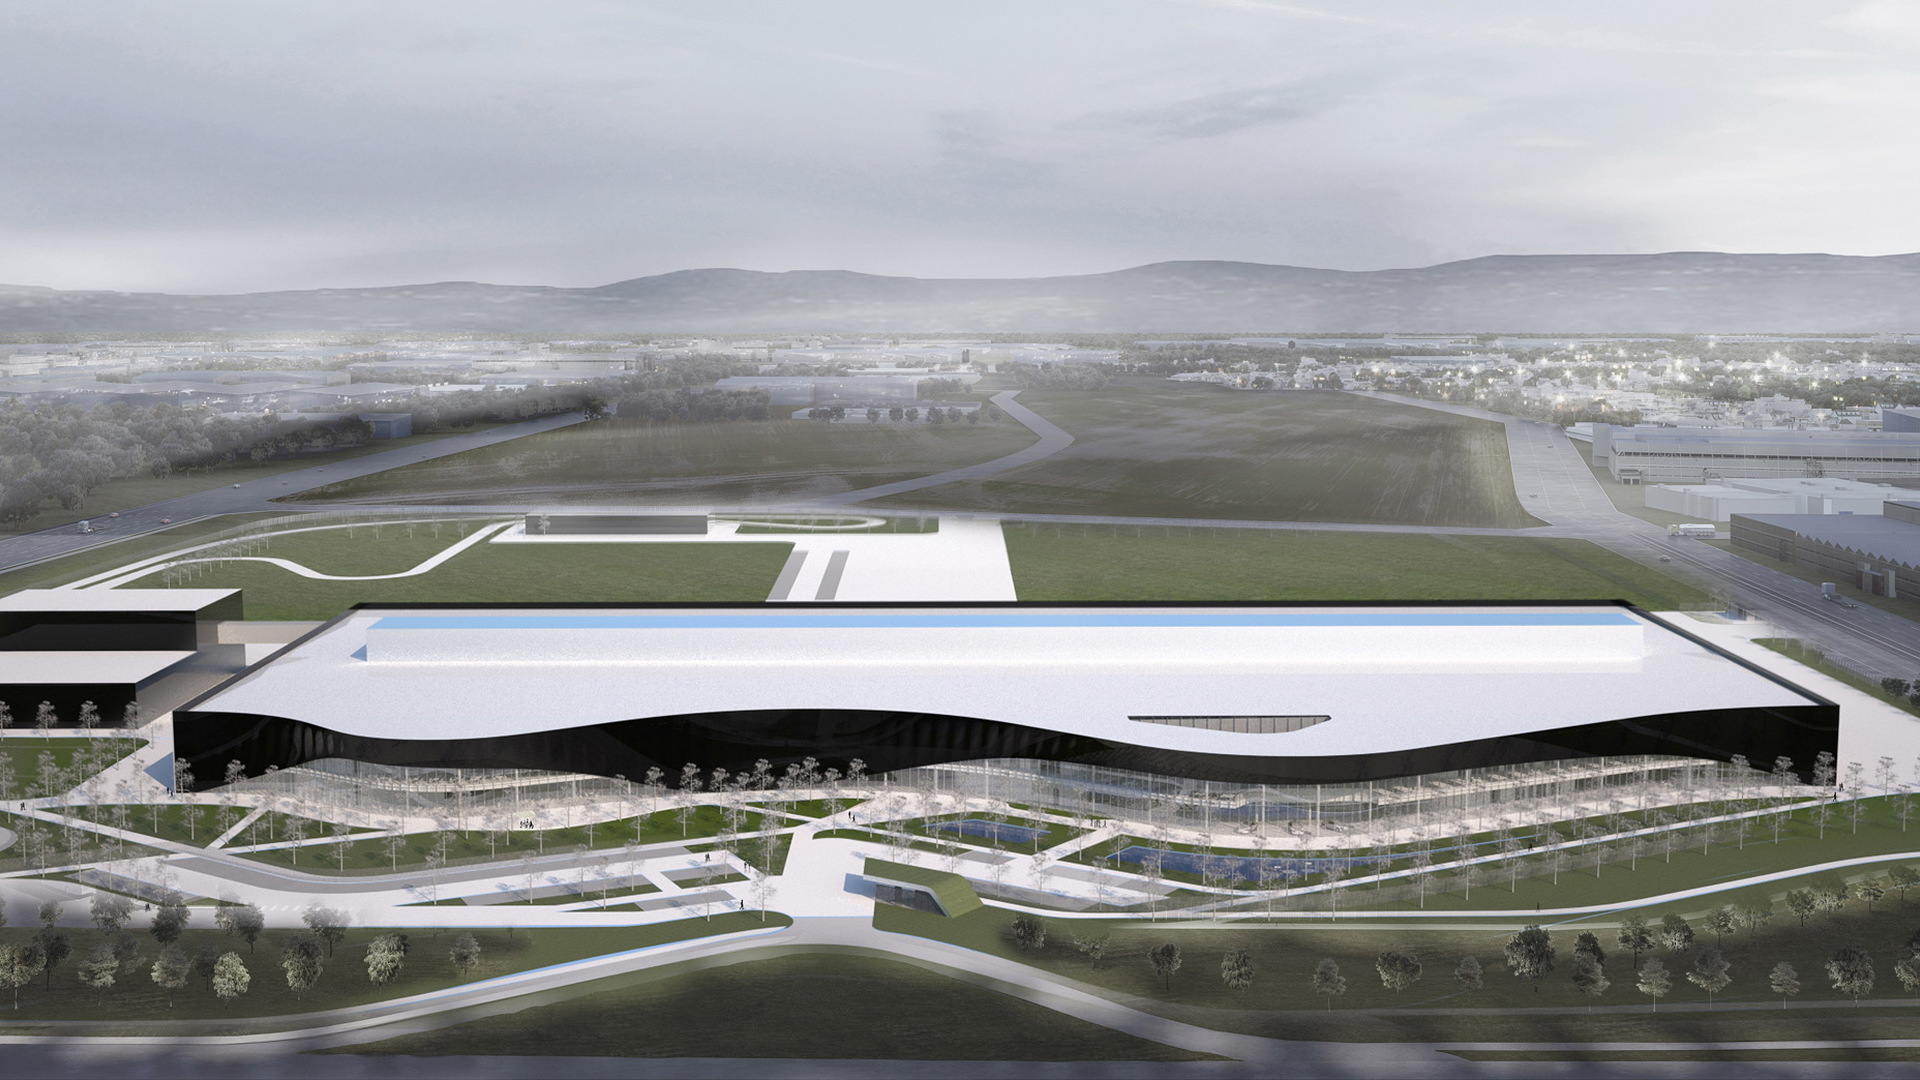 Artist's impression of the Polestar plant under construction in Chengdu, China